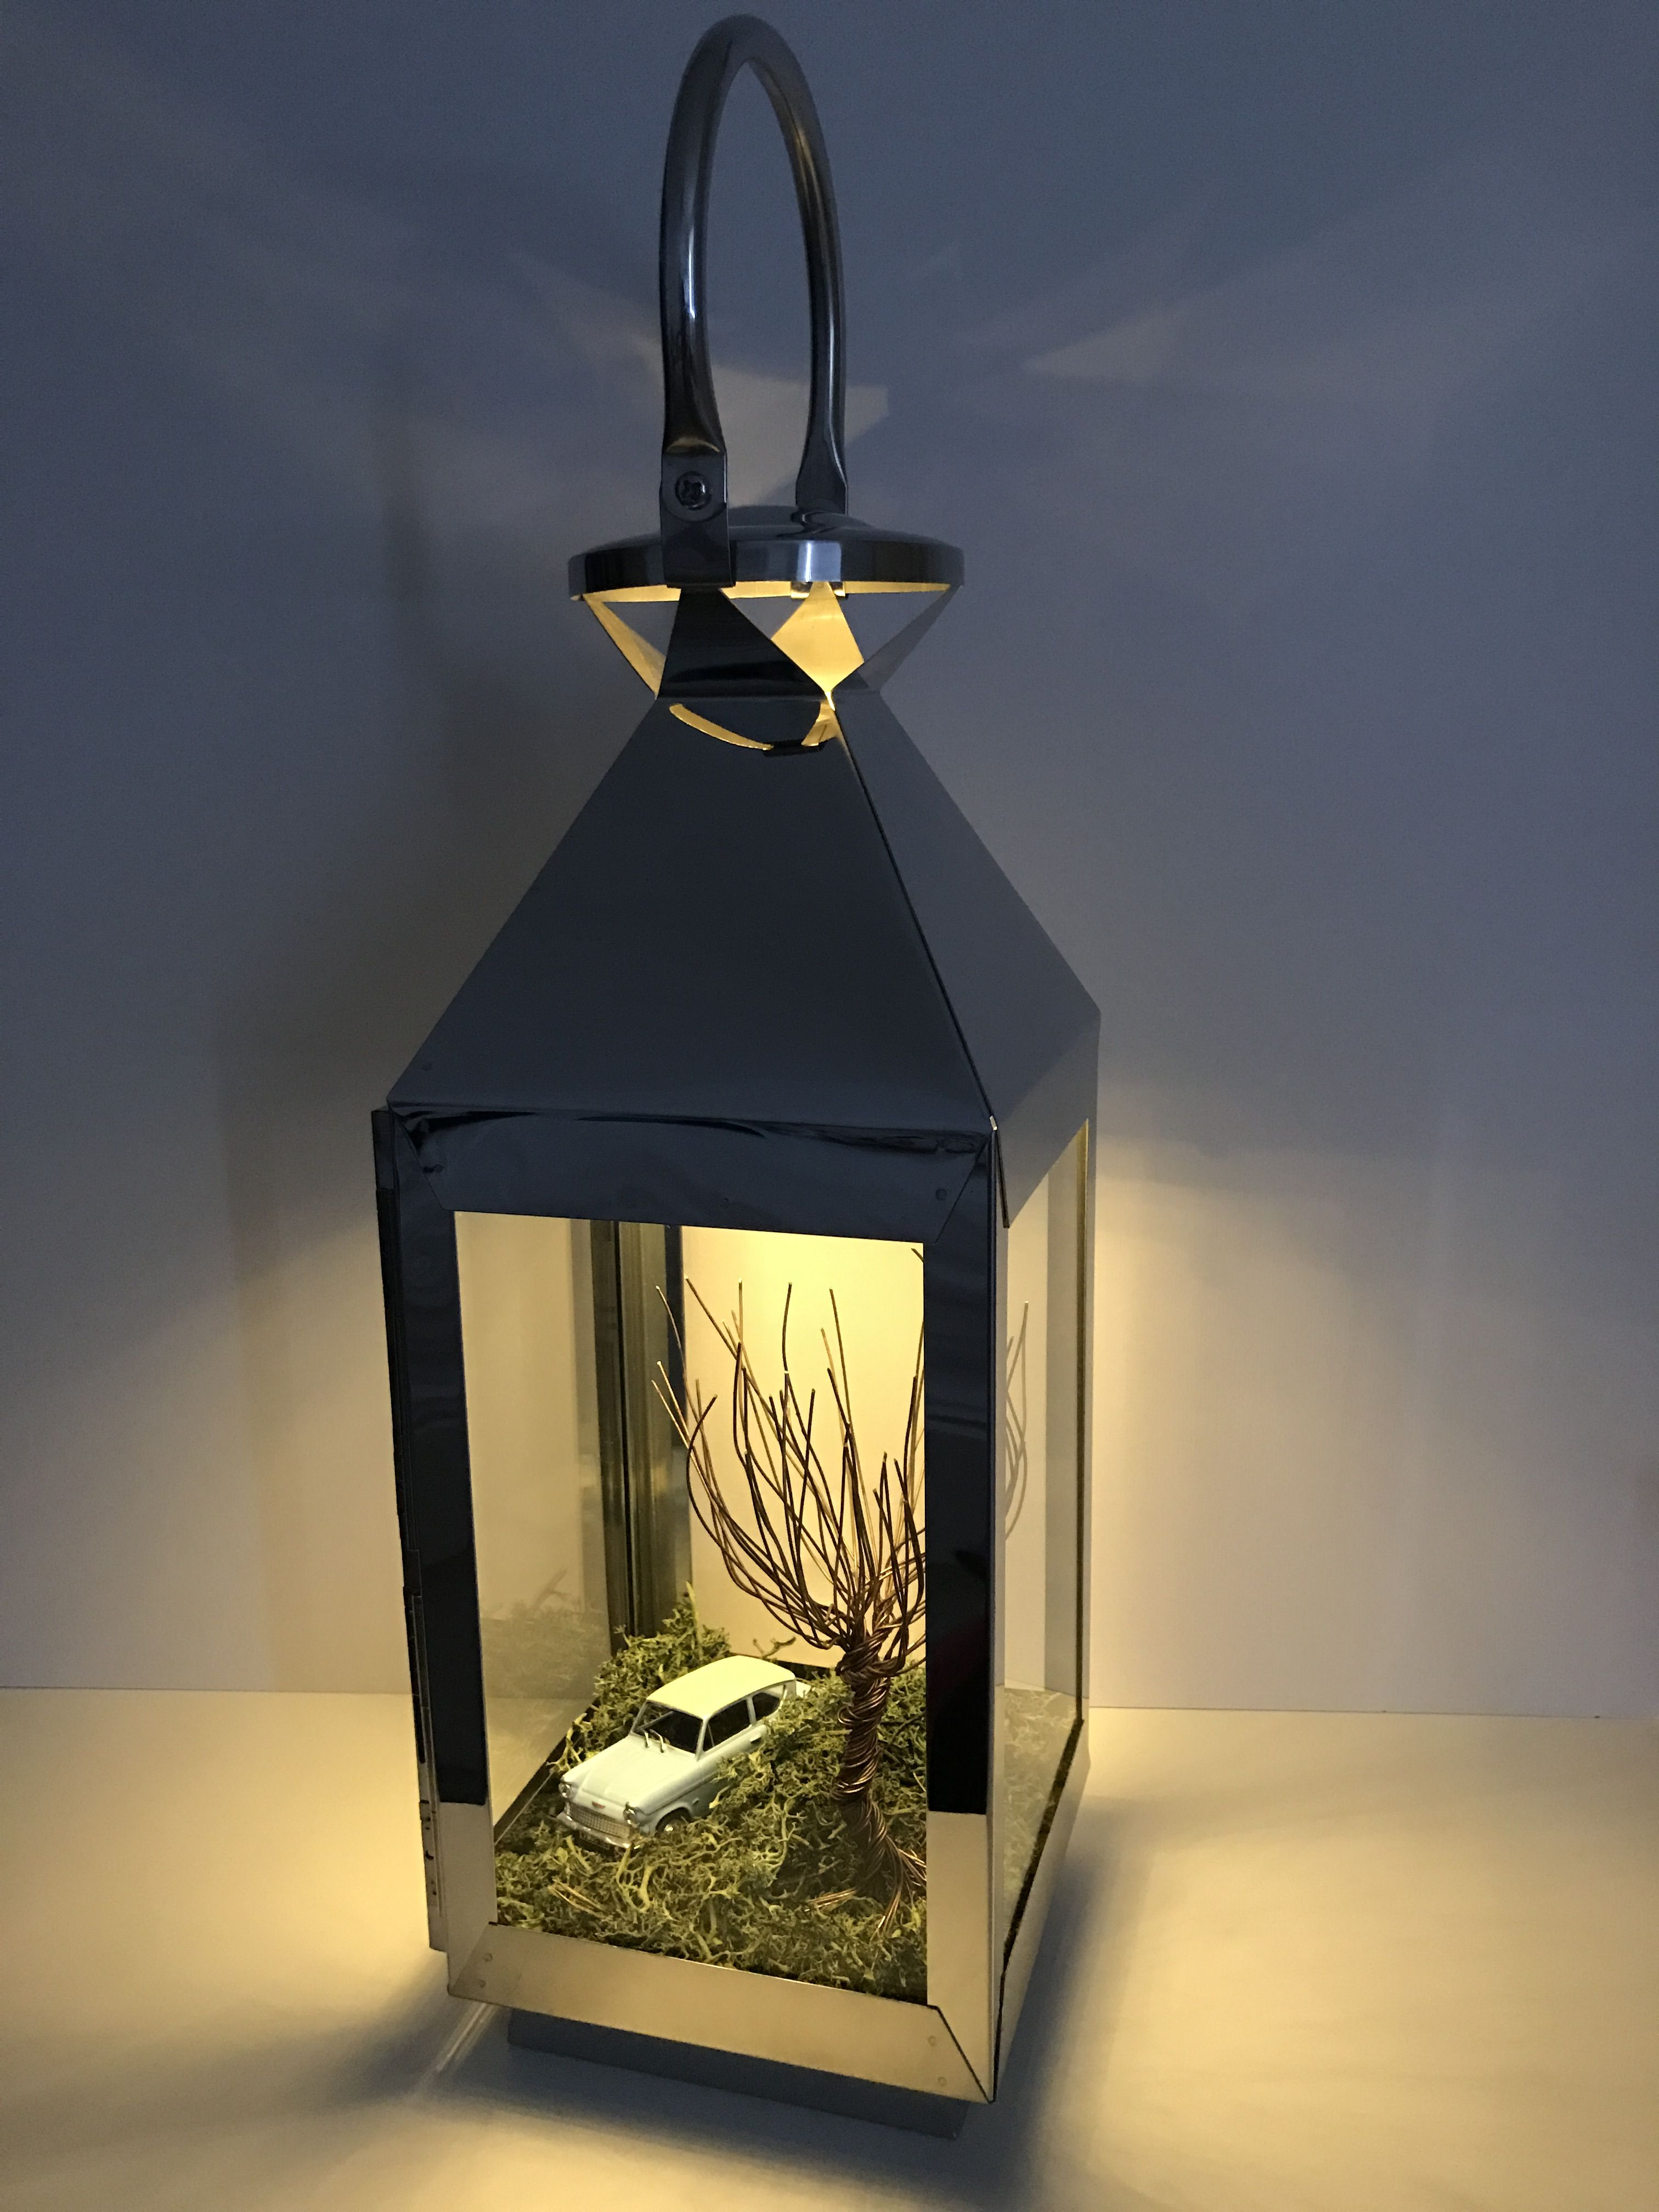 Harry Potter Lantern Birthday Gift The Whomping Willow And